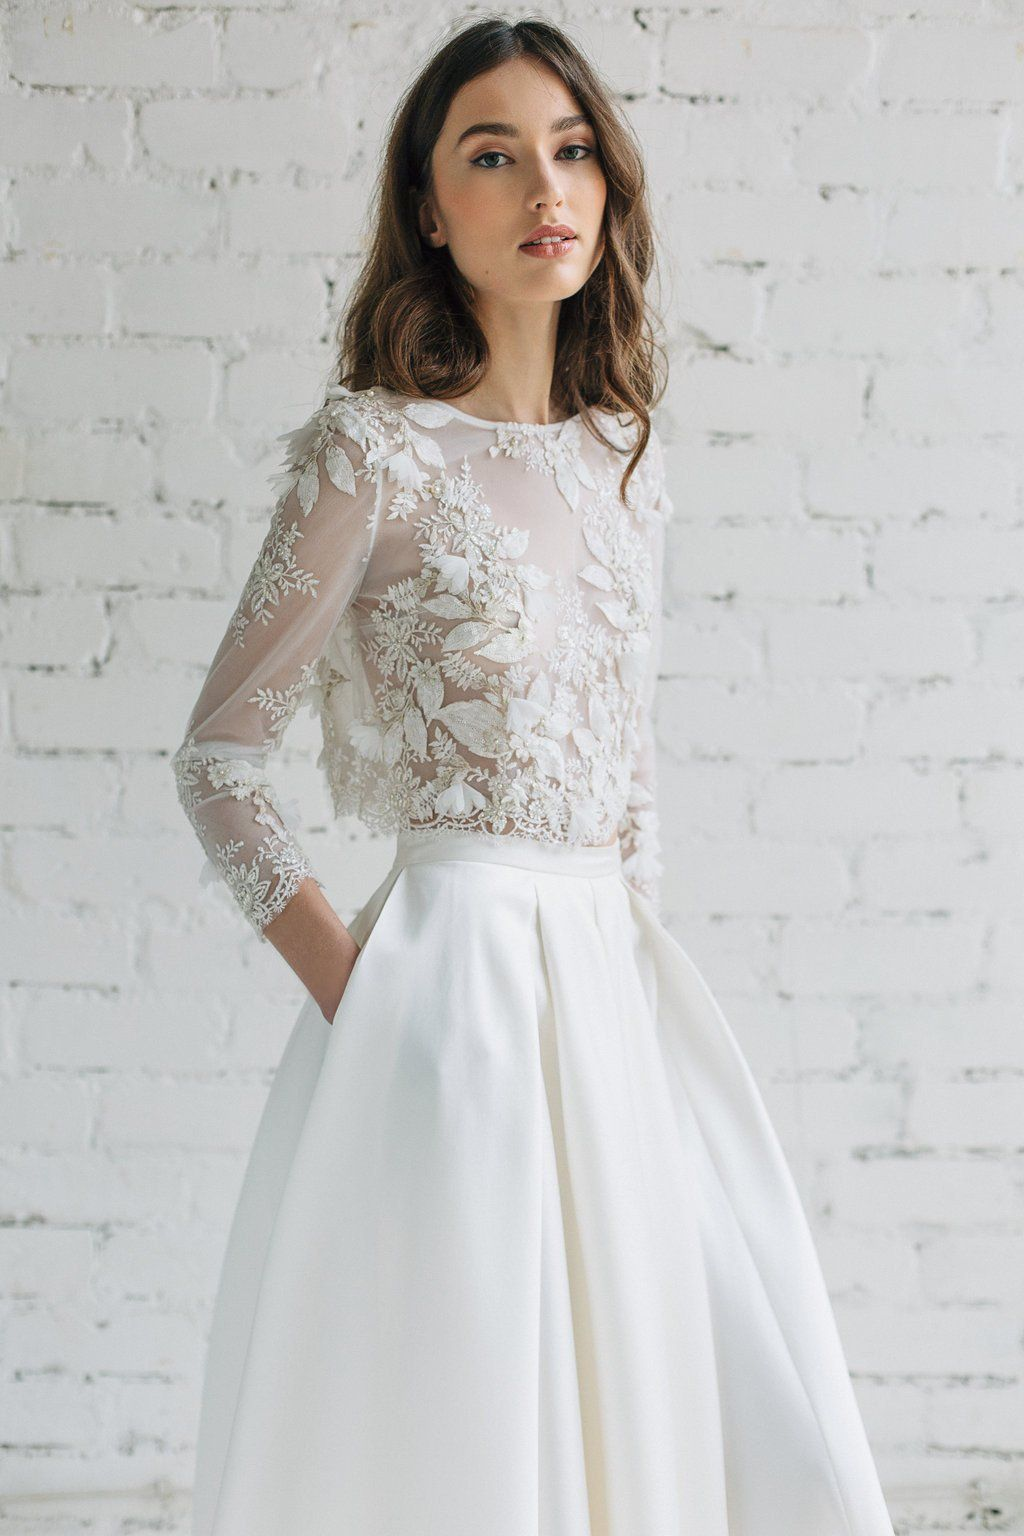 bridal lace top | wedding in 2018 | Pinterest | Wedding dresses ...